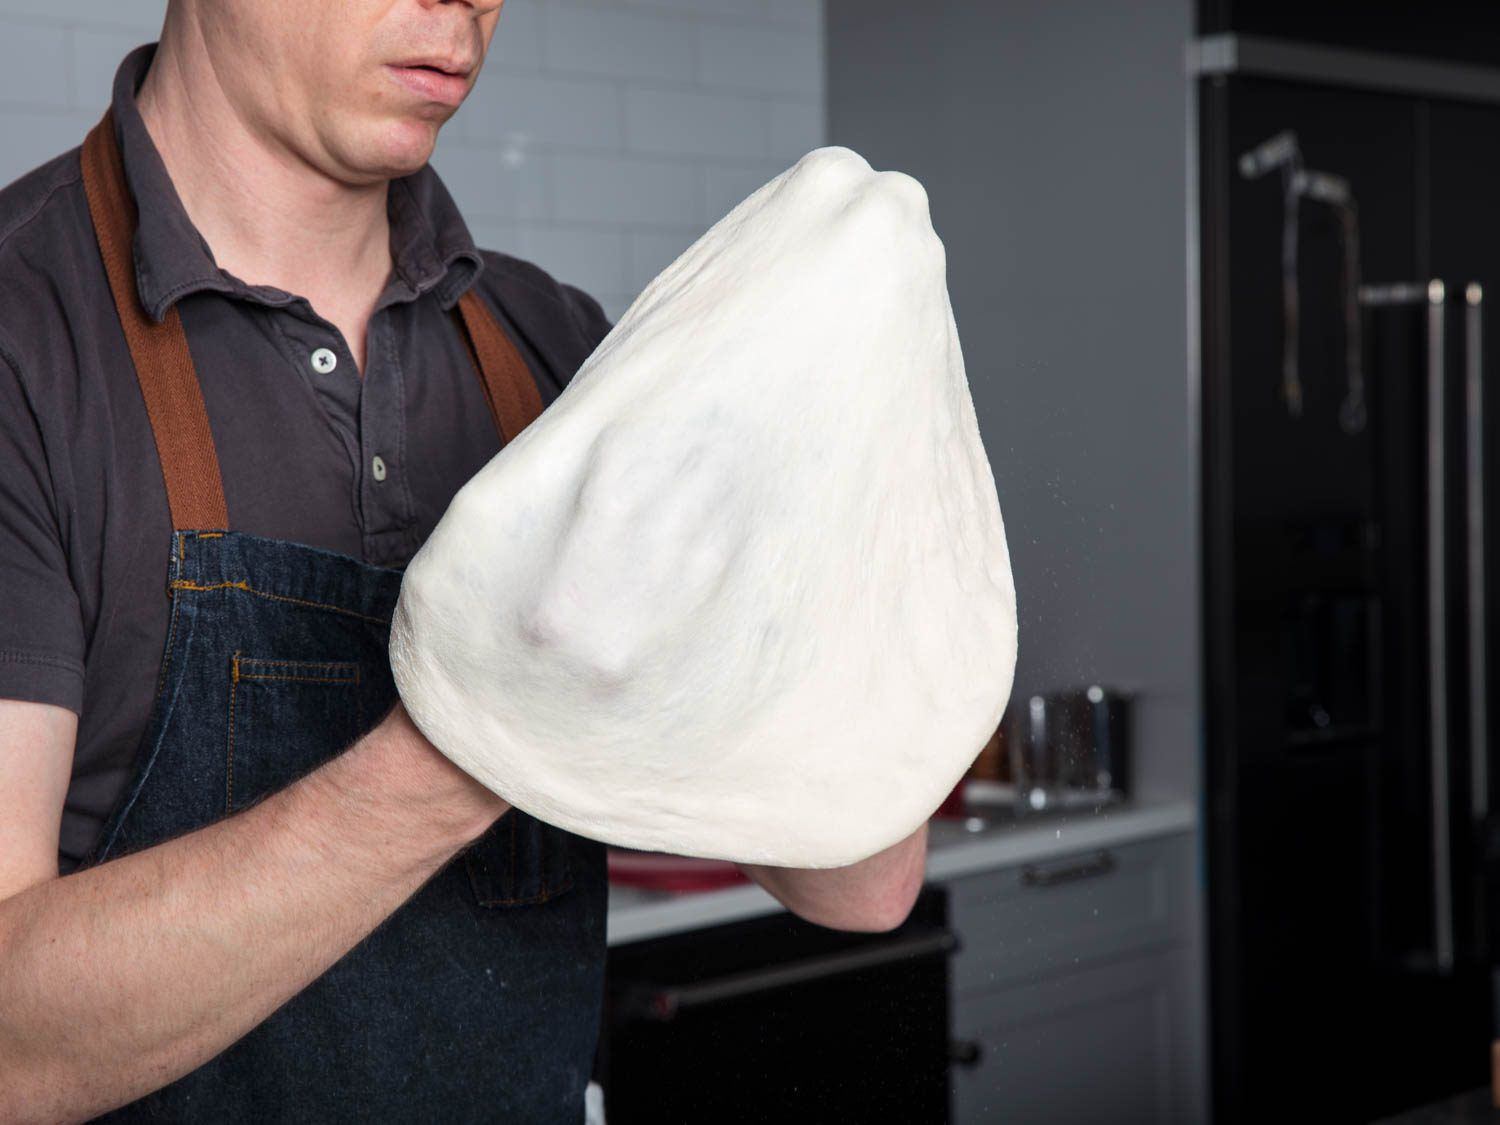 Stretching pizza dough by hand.